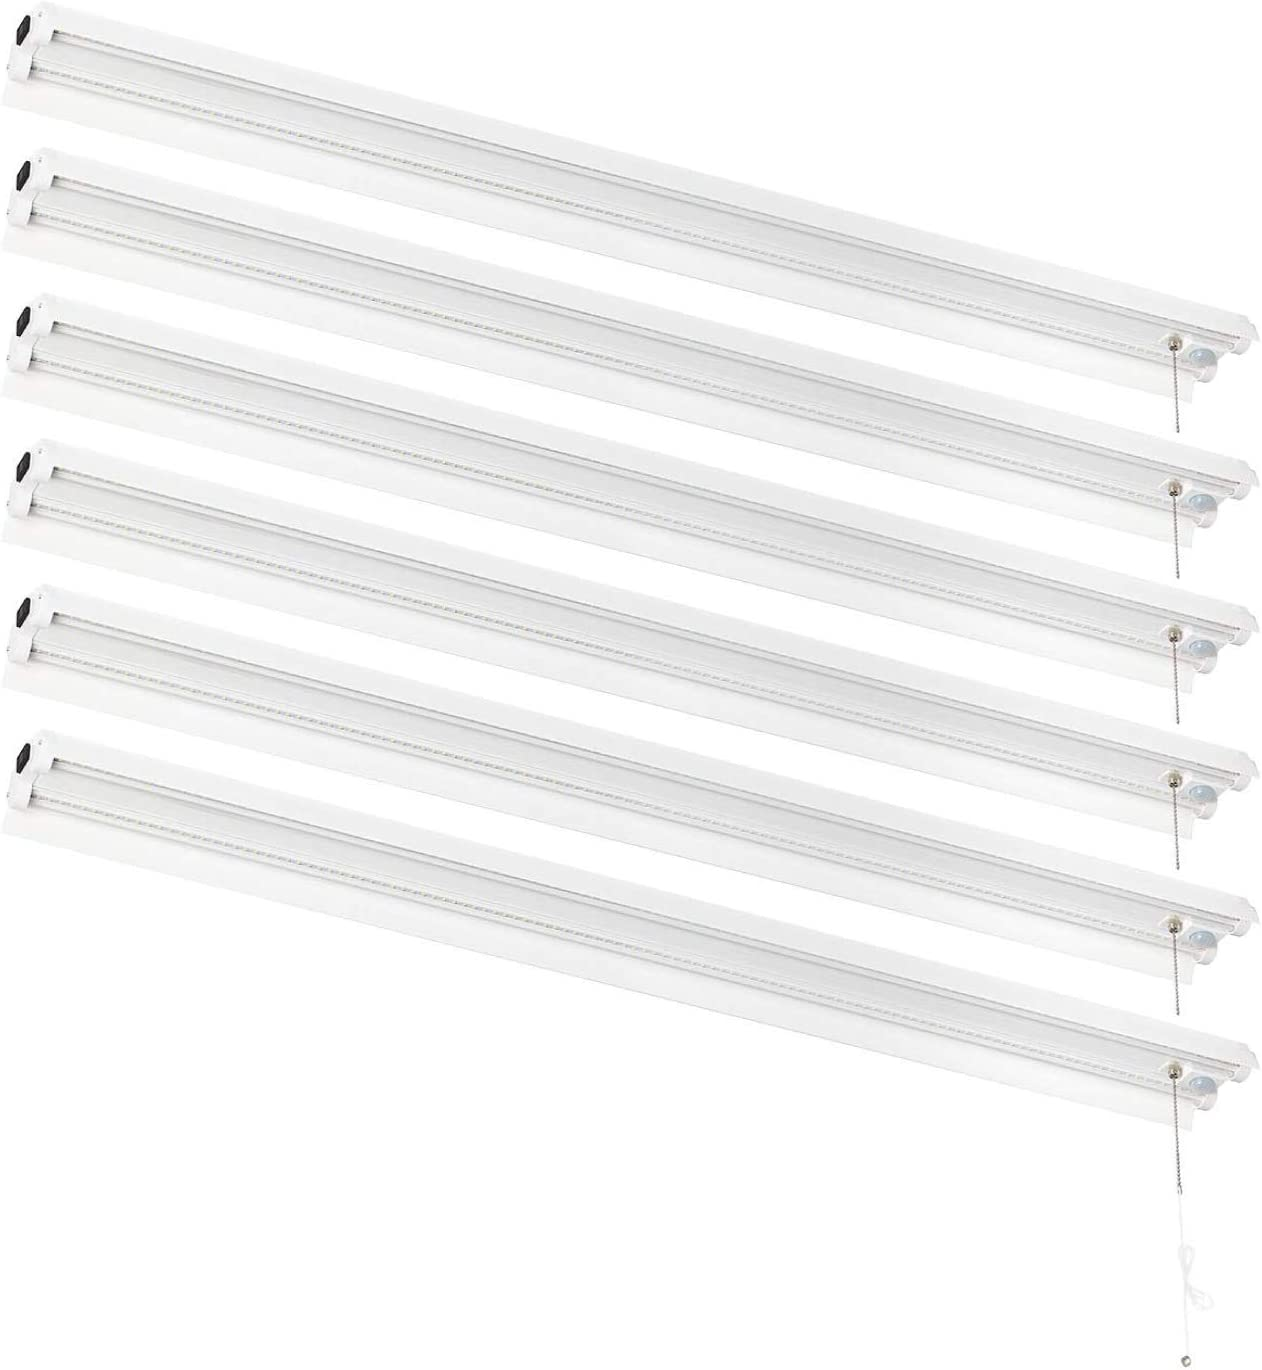 AmazonCommercial Linkable Motion Sensing LED Utility Shop Light with Bypass Switch, 4-Foot, 4500 Lumens, 40 Watt, Energy Star and ETL Certified   Daylight, 6-Pack